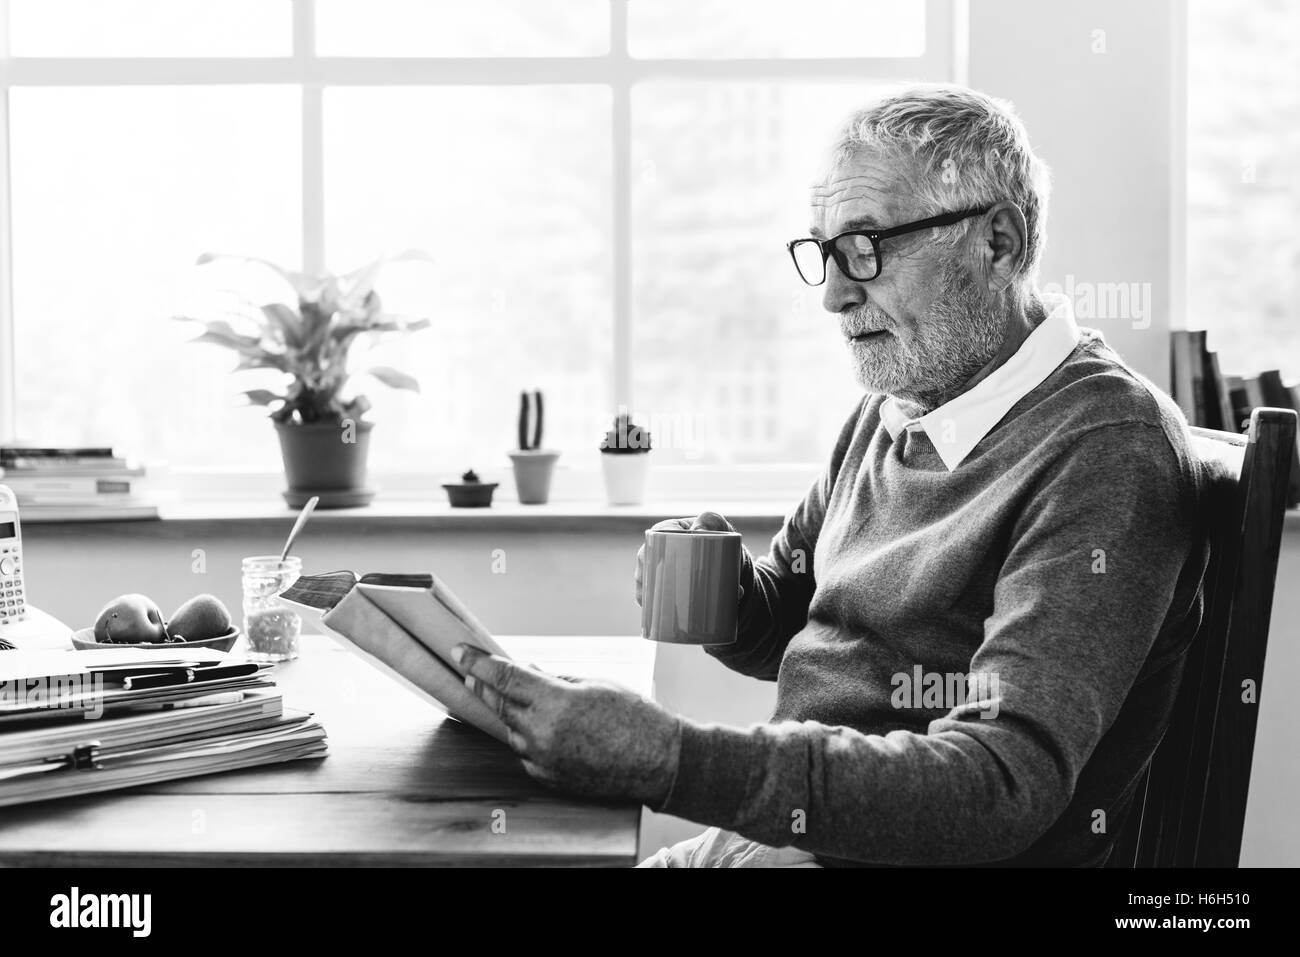 Reading Relaxation Pension Grandfather Coffee Concept - Stock Image